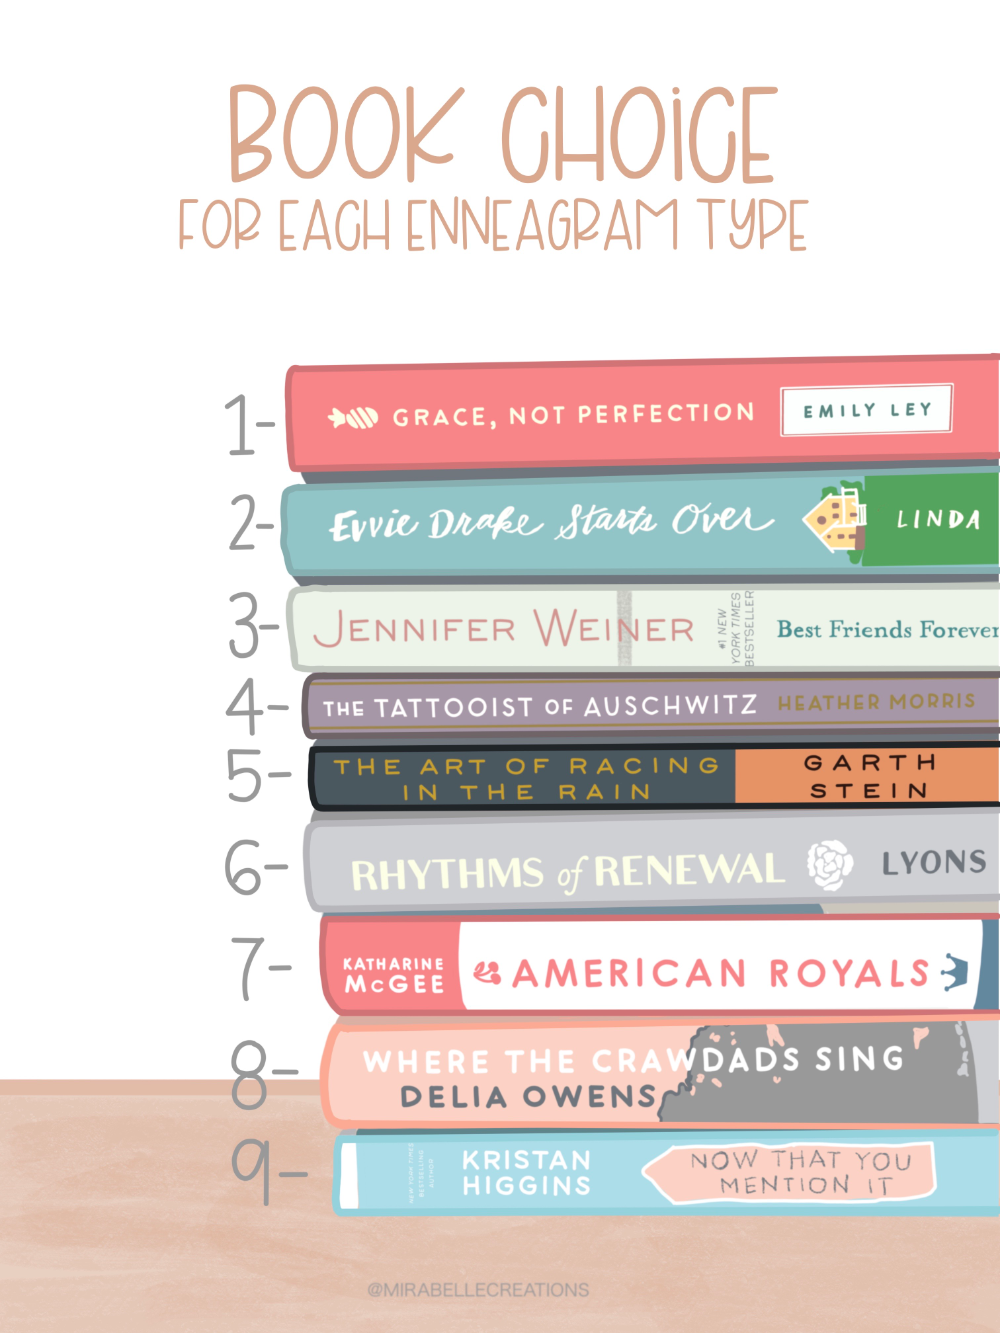 Book Recommendation List (Based on Your Enneagram Type)